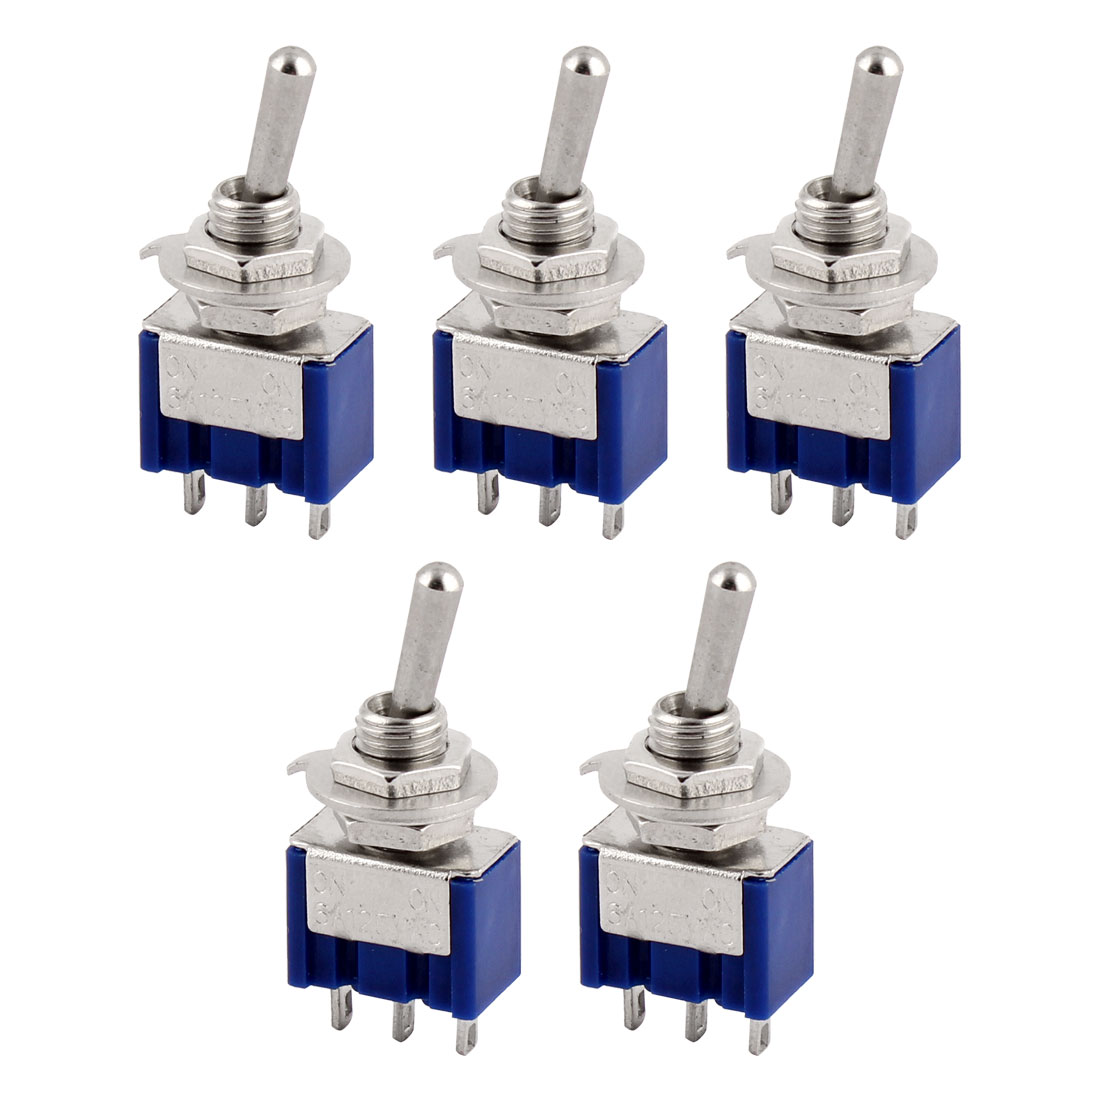 5 Pcs ON/ON 2 Position SPDT Latching Toggle Switch AC 125V/6A Blue